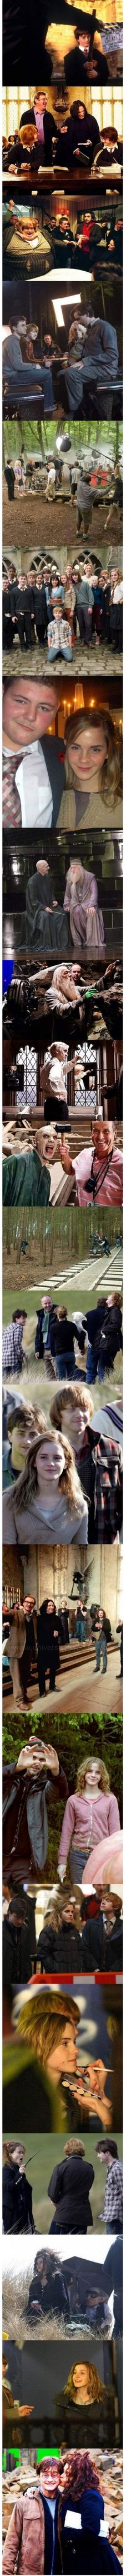 Behind the scenes, harry potter, awesome Some of these ads hard for me to see like dumbledoor and voldemort